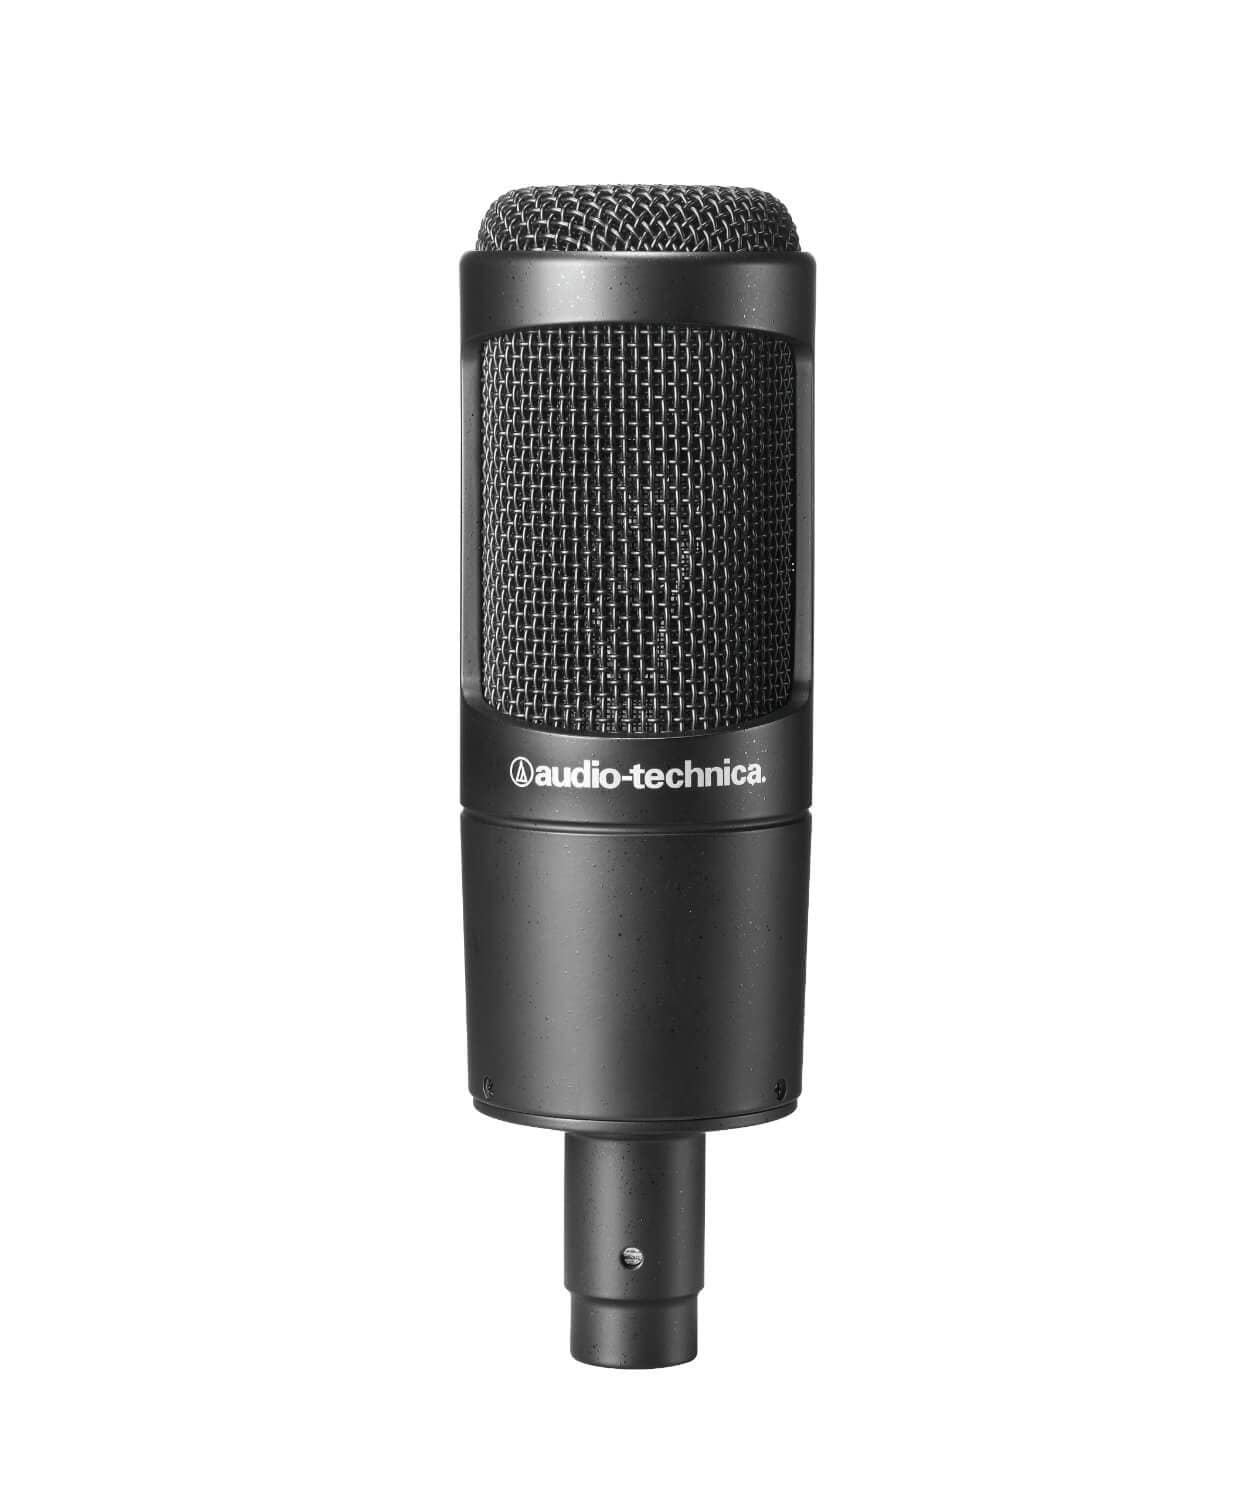 Best Microphone for Music (Vocals): Audio-Technica AT2035